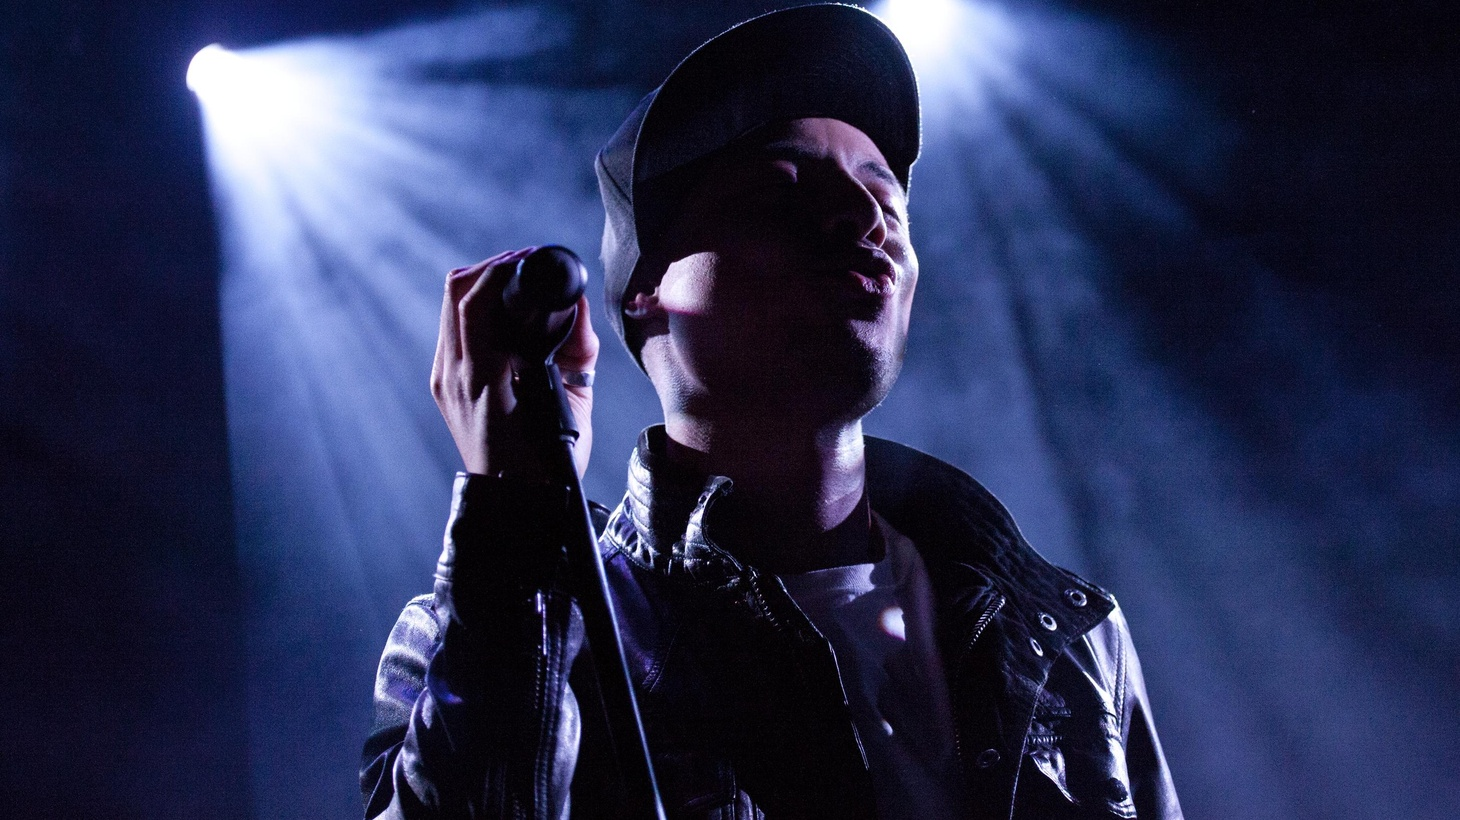 Sure to make many Top 10 lists this year, José James' new record is sexy and sublime. It's been a KCRW favorite for months now...